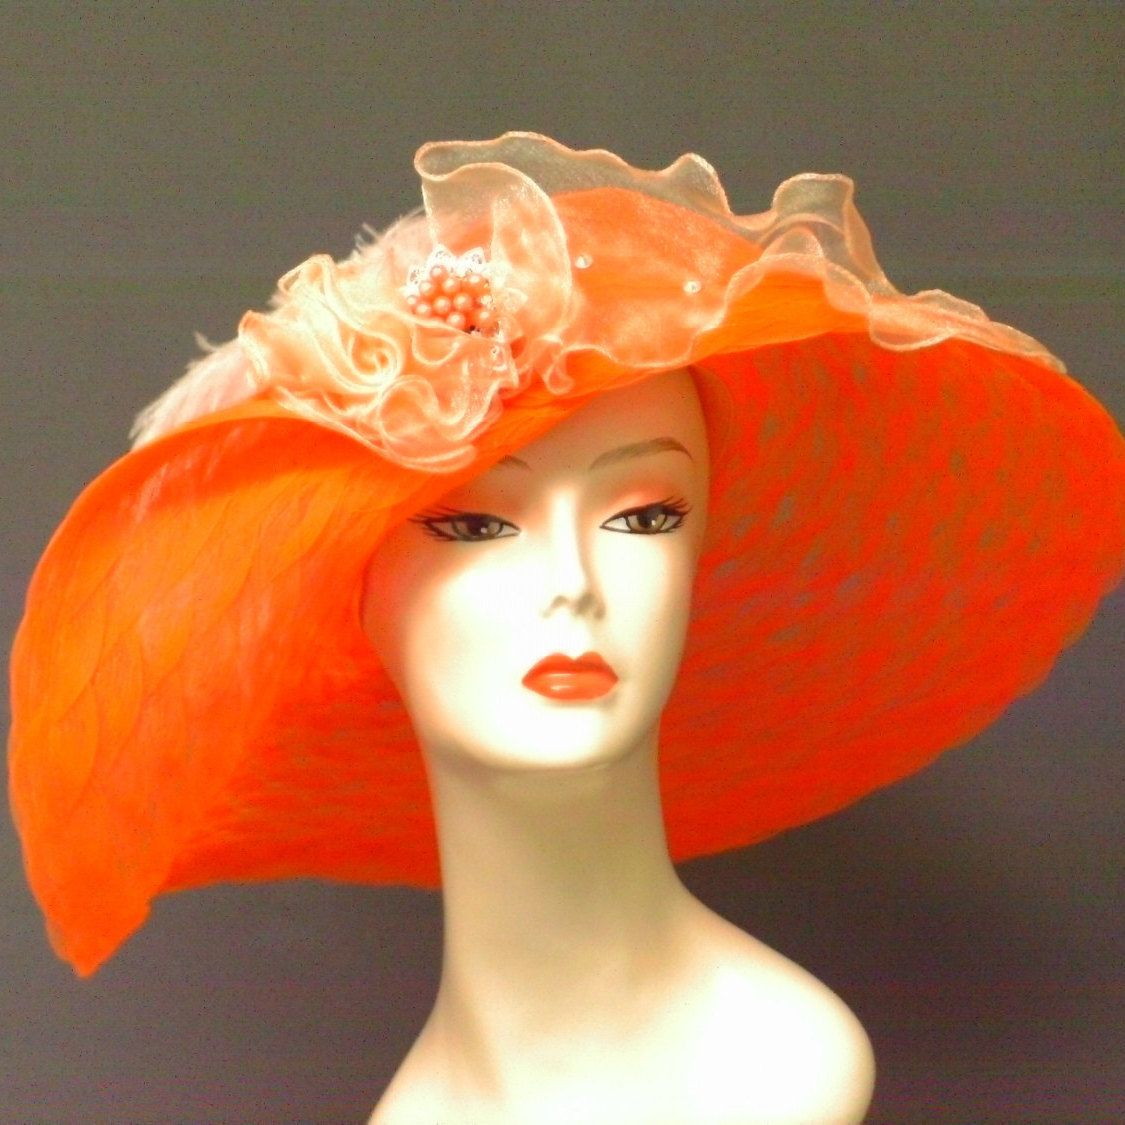 Orange Del Mar Hat, Kentucky Derby Hat, Garden Party Hat, Tea Party Hat, Church Hat, Wedding Hat, fashion hat, hat for woman 096 by crowninglorihats on Etsy https://www.etsy.com/listing/217295501/orange-del-mar-hat-kentucky-derby-hat